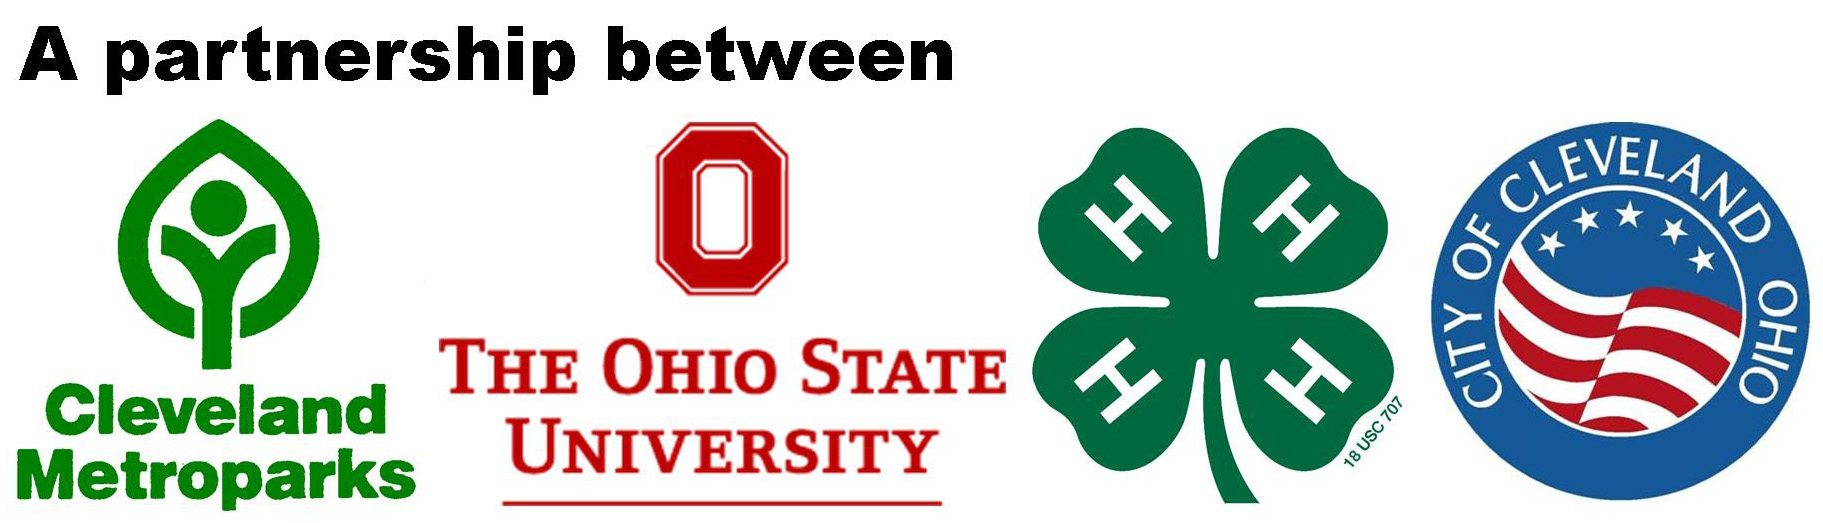 Youth Outdoors partner logos, Cleveland Metroparks, Ohio State University, 4H, City of Cleveland